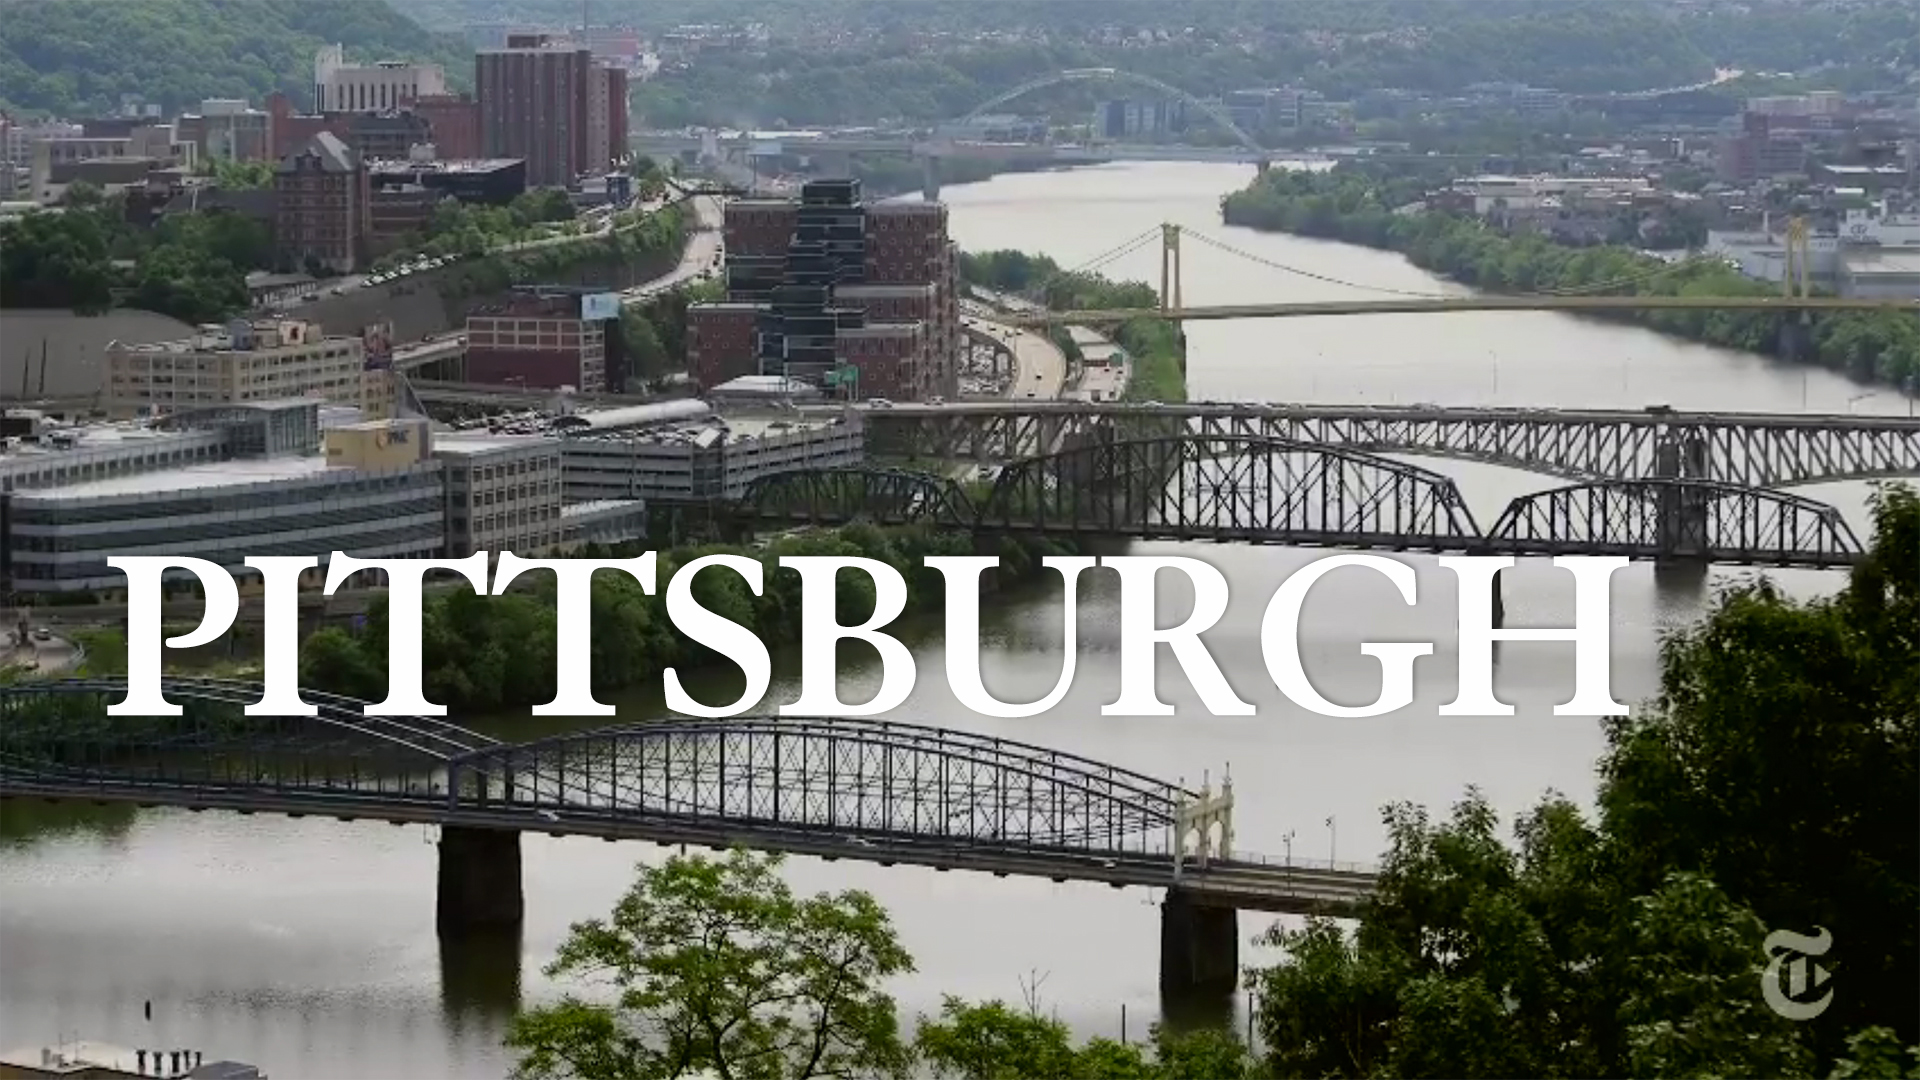 36 HOURS: PITTSBURGH